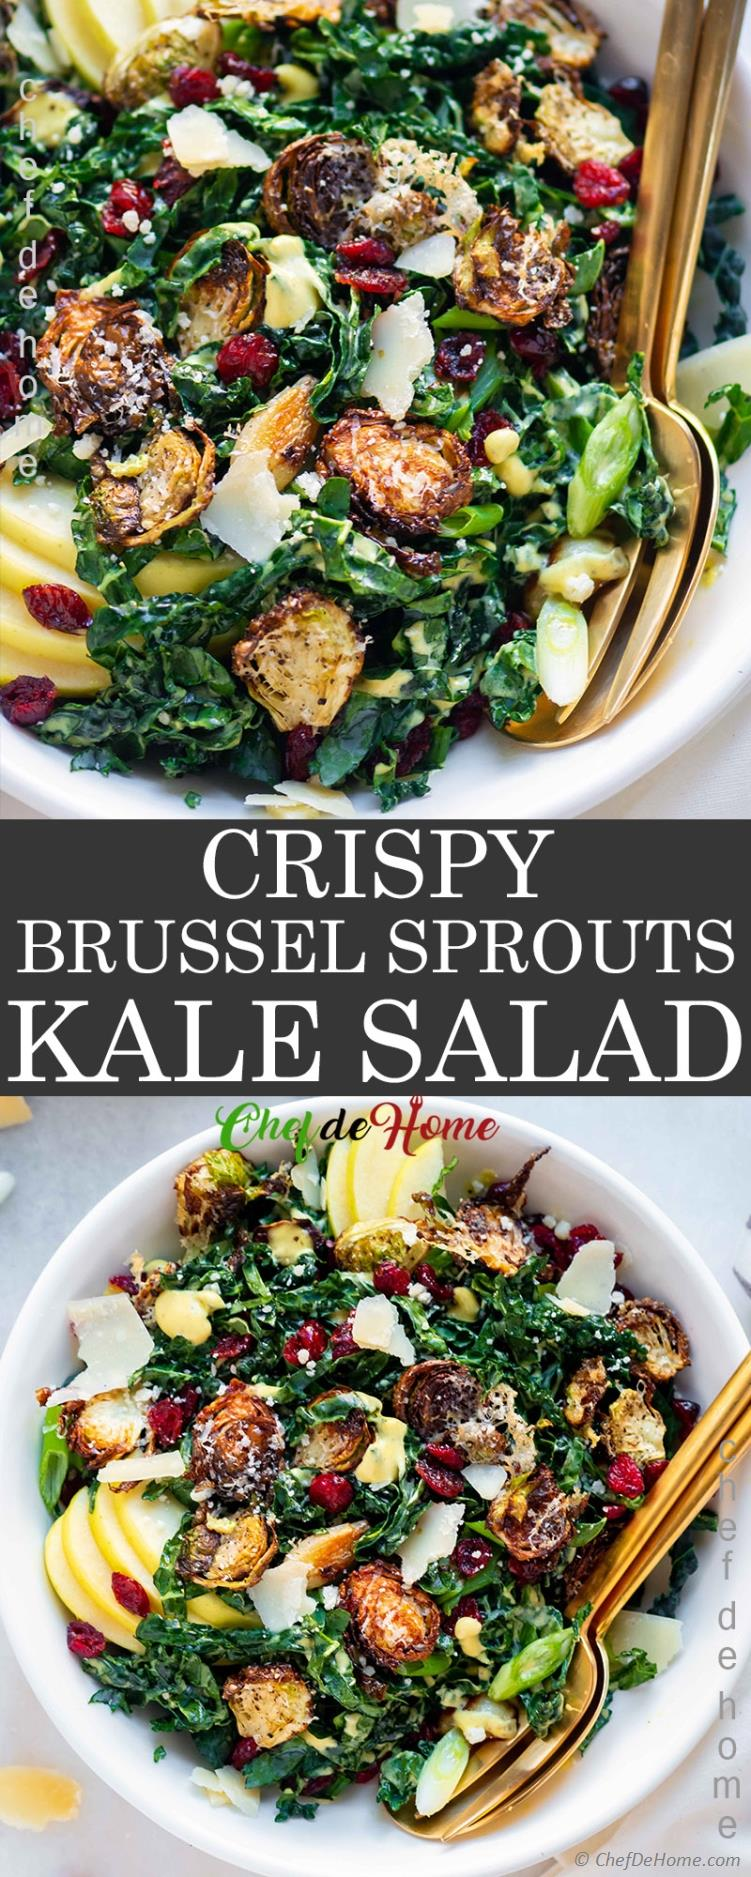 Kale Salad with Crispy Roasted Brussel Sprouts